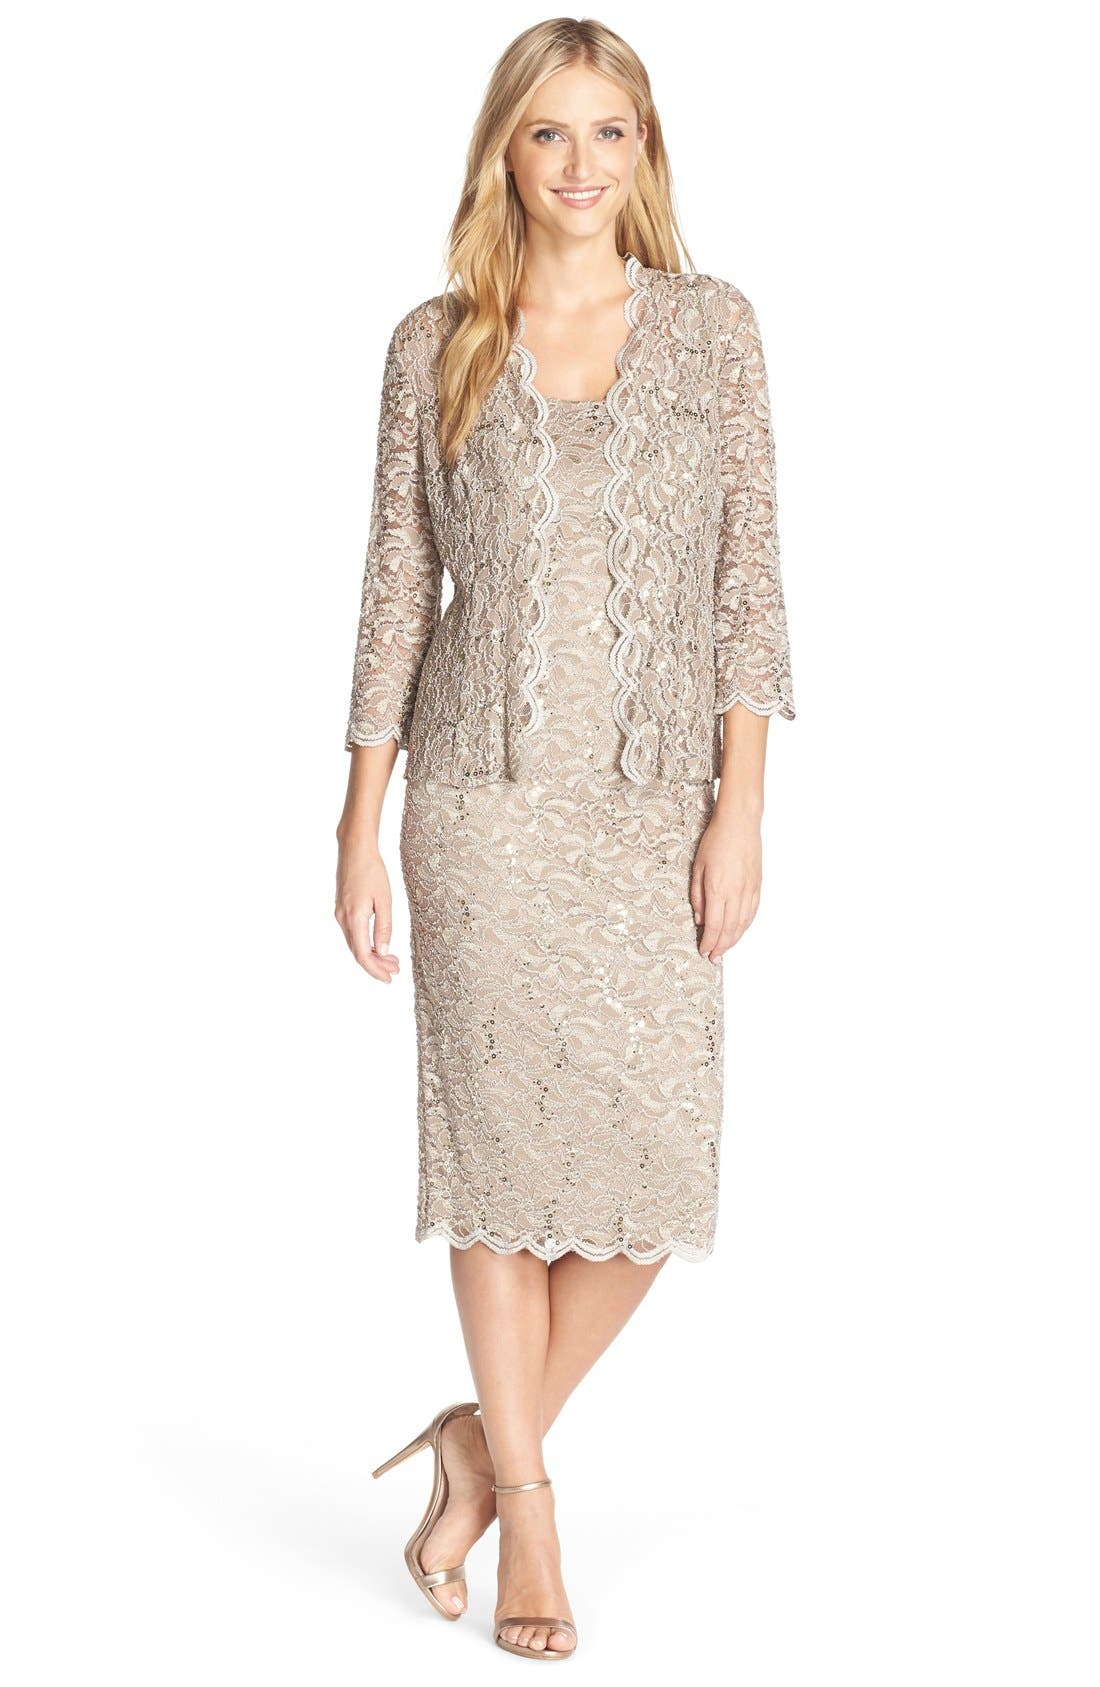 ALEX EVENINGS Lace Dress & Jacket, Main, color, CHAMPAGNE